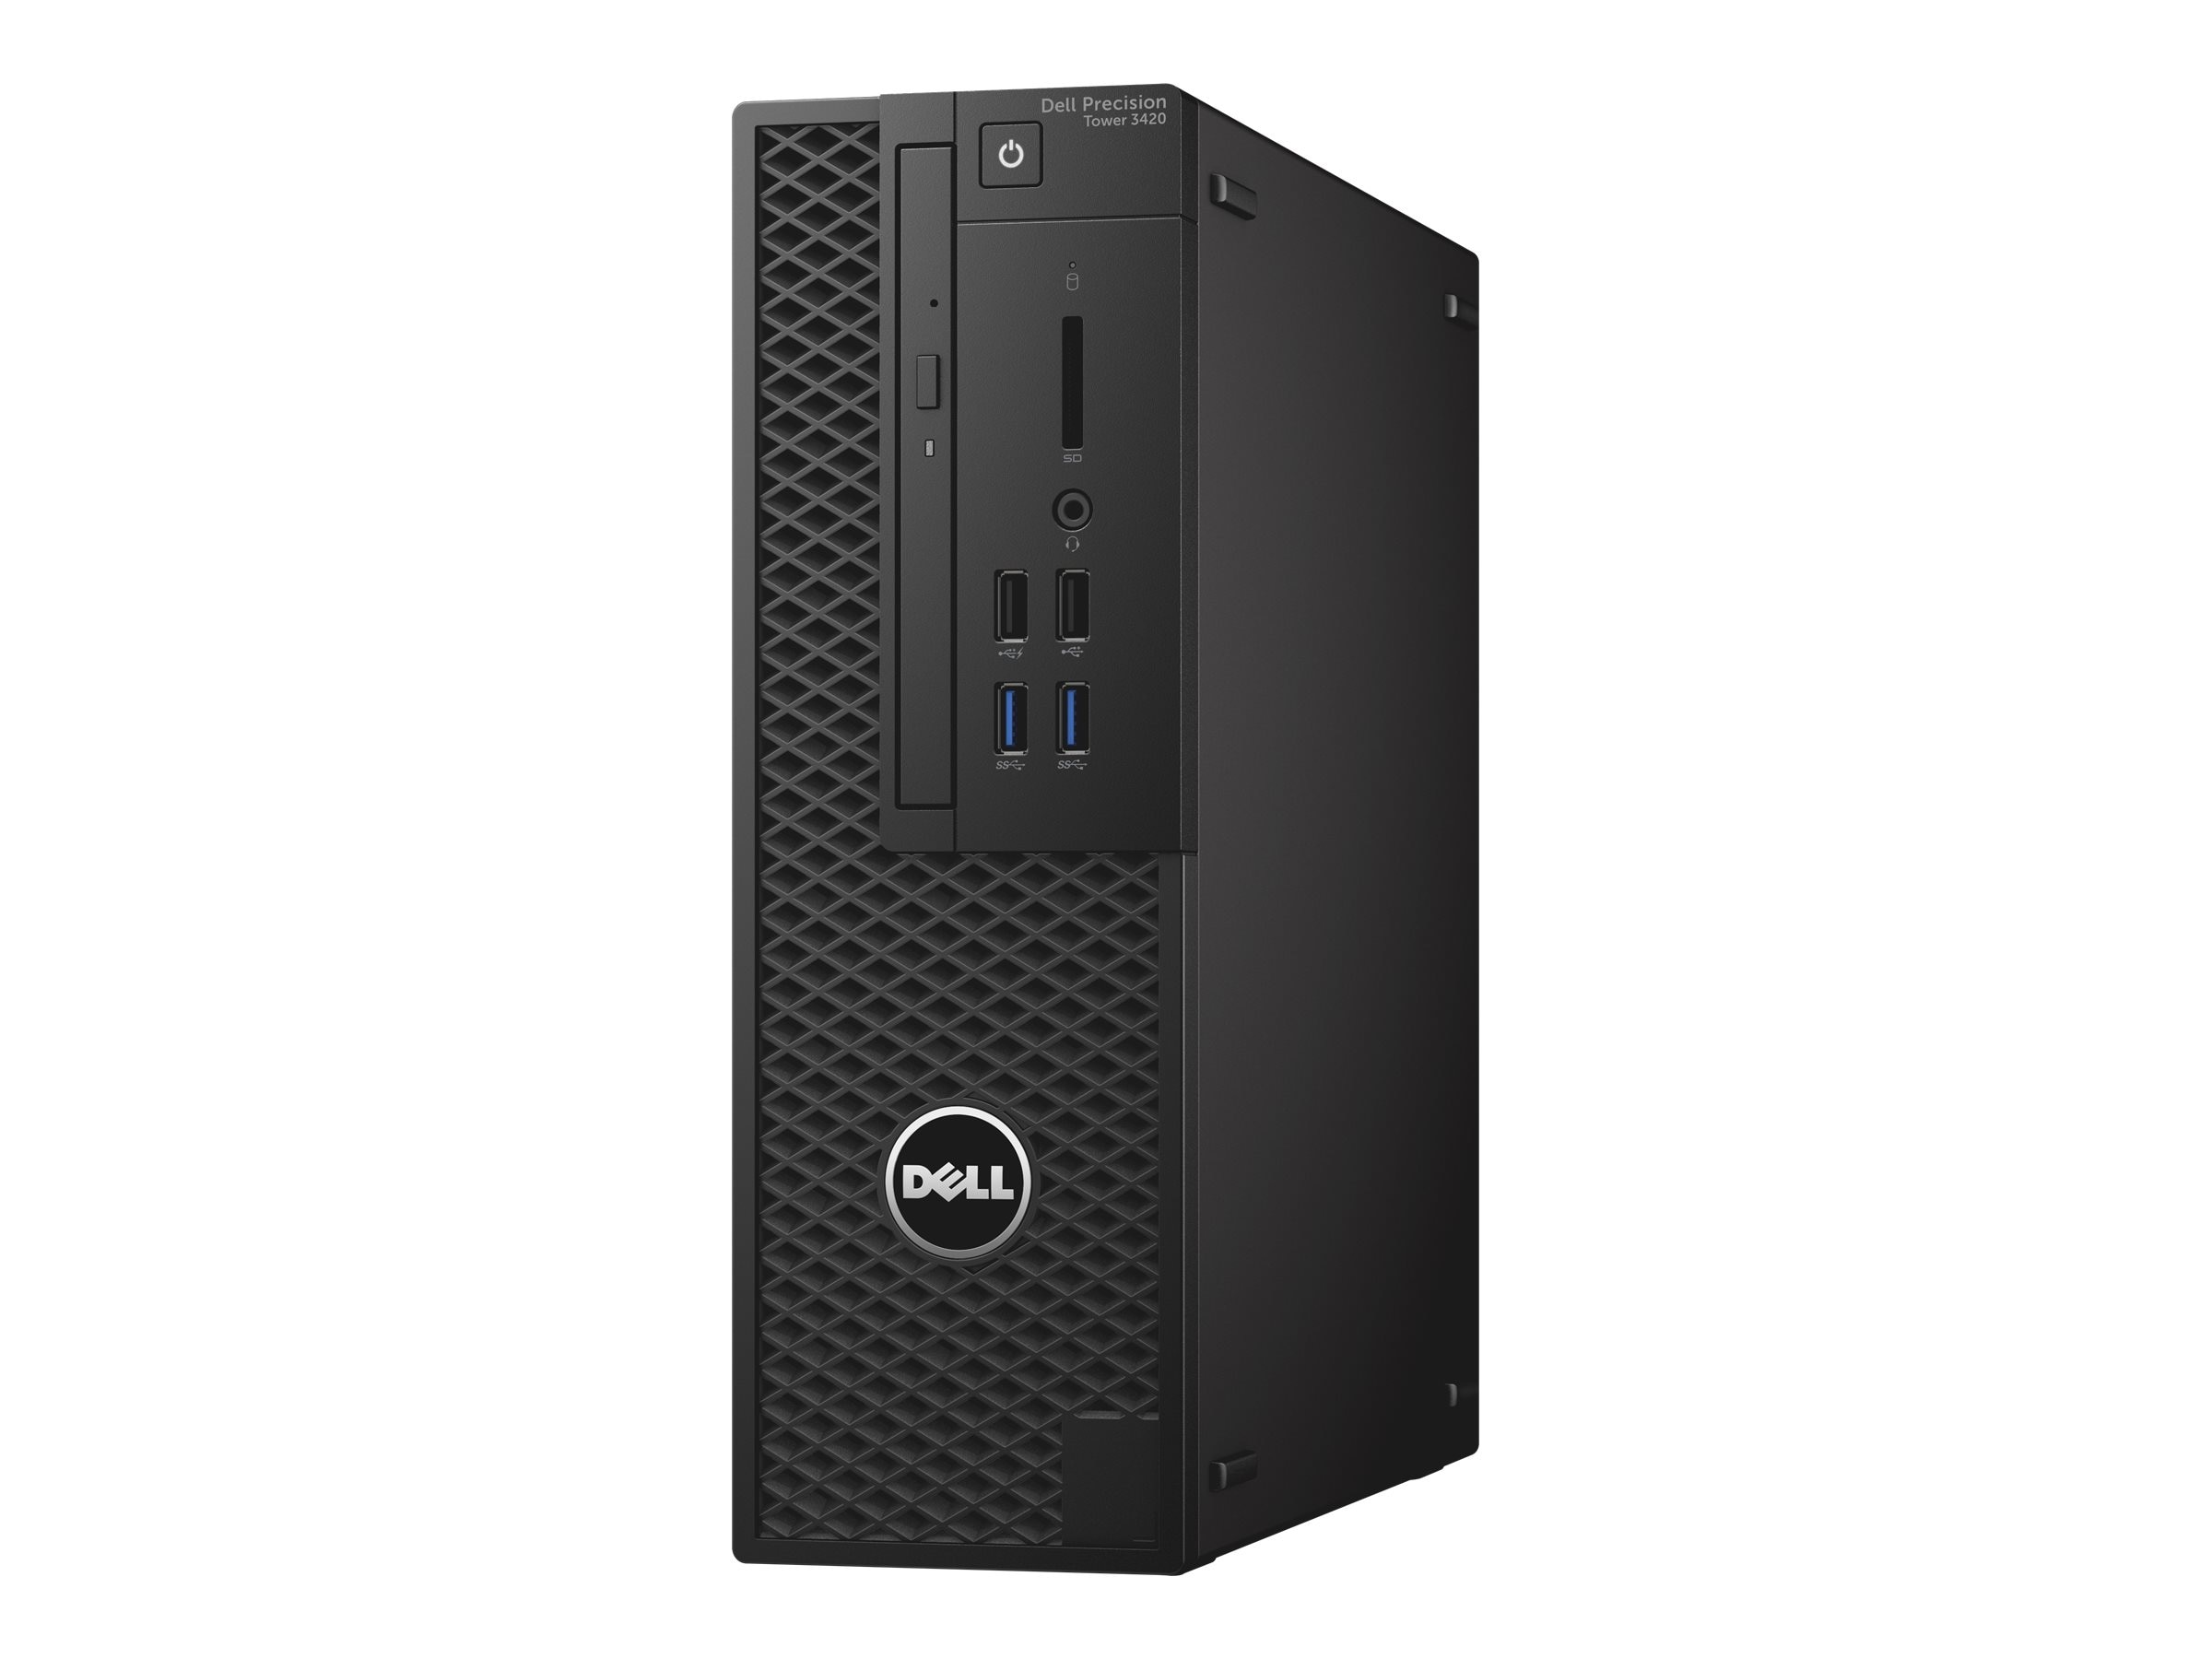 Dell Precision 3420 SFF Core i7-6700 3.4GHz 8GB 1TB HD530 DVD-ROM GbE W7P64-W10P, CRD56, 31867053, Workstations